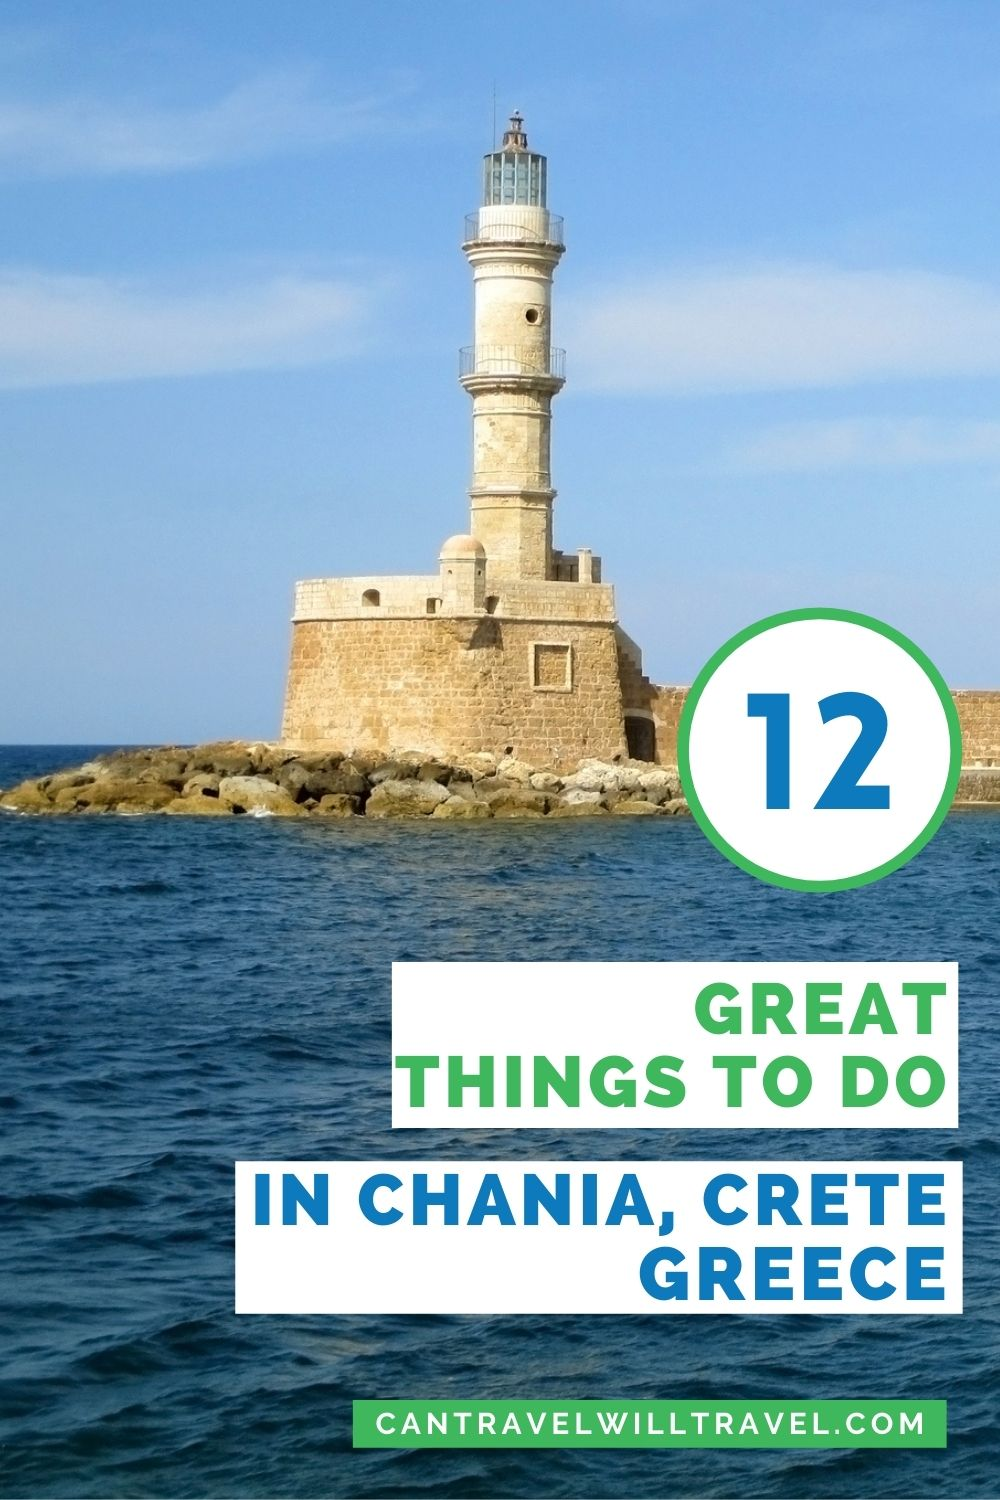 Great Things to Do in Chania, Crete in Greece